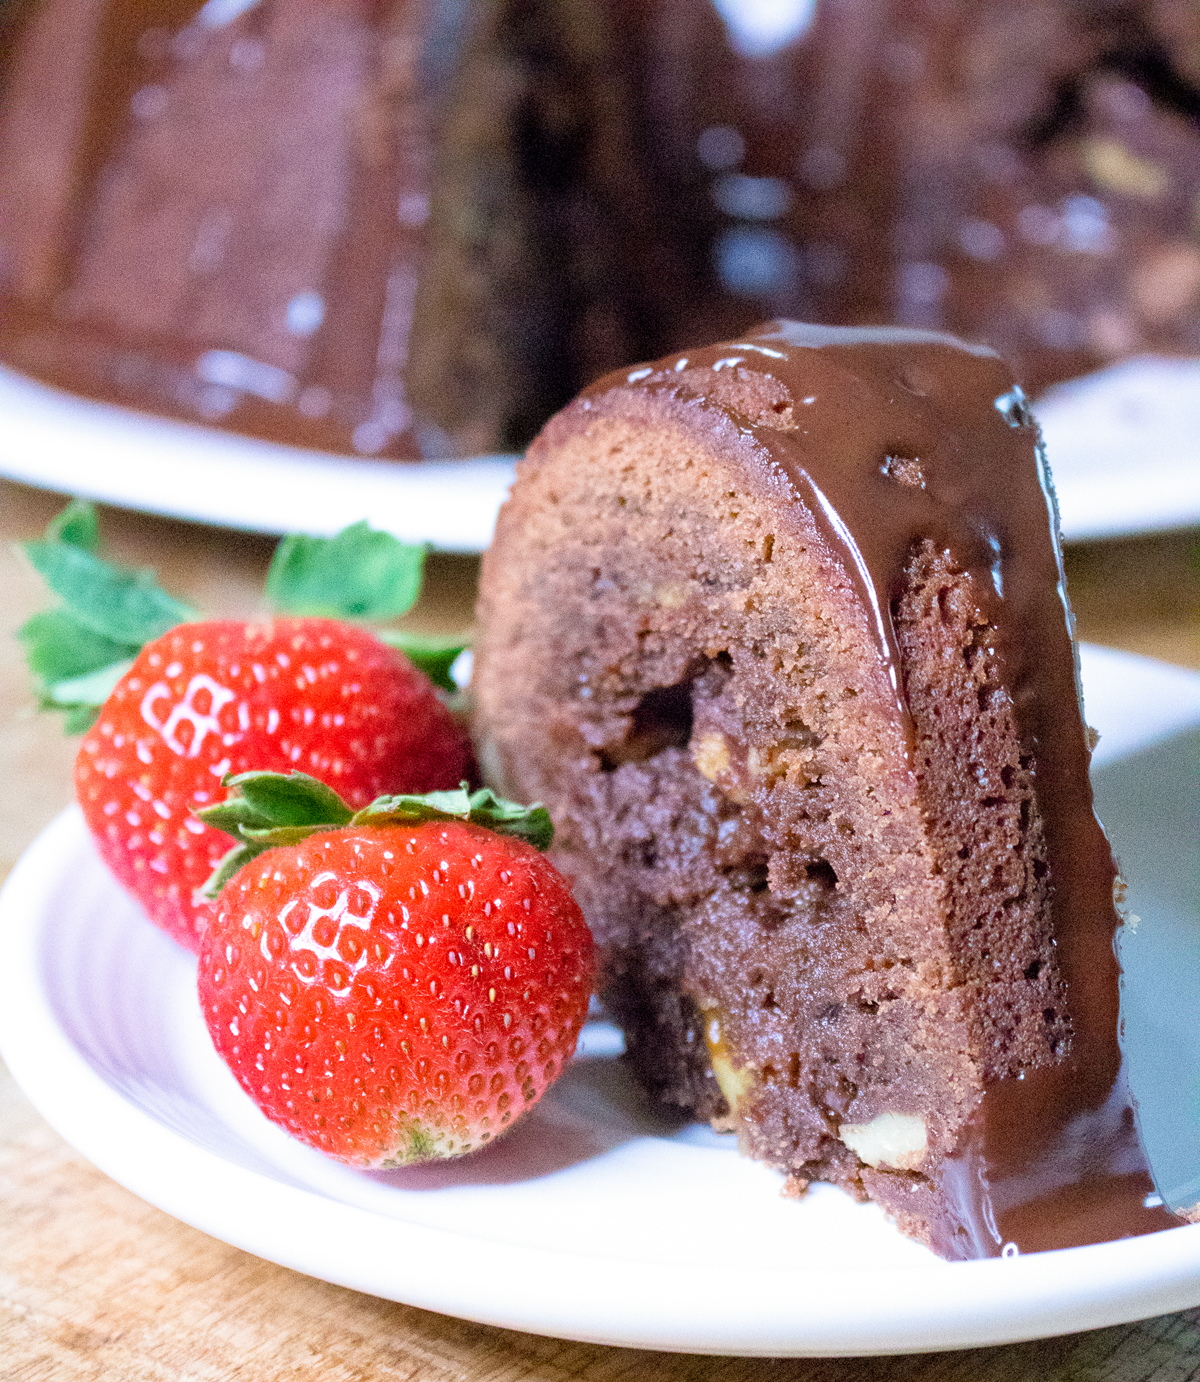 tunnel of fudge cake slice with whole strawberries on the side